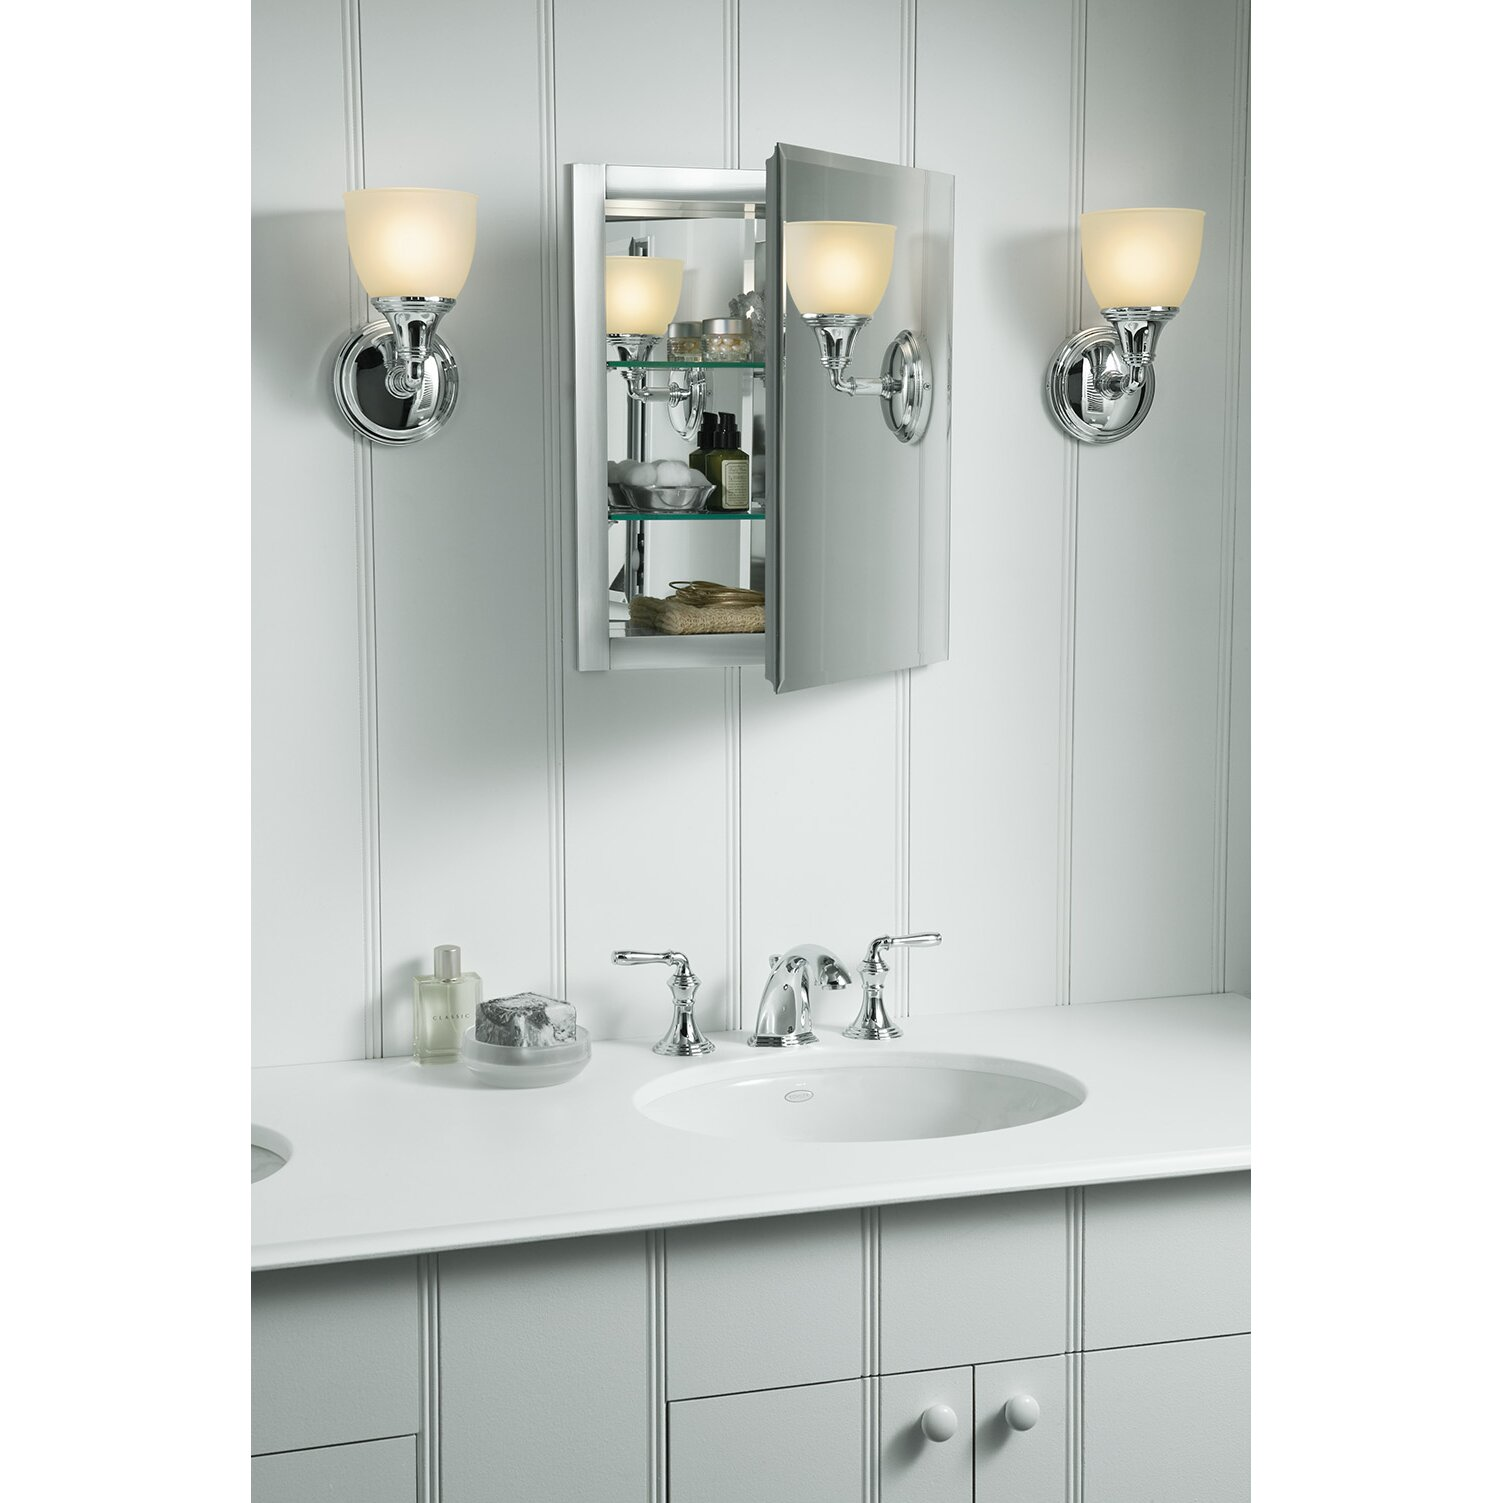 Kohler 16 X 20 Aluminum Mirrored Medicine Cabinet Reviews